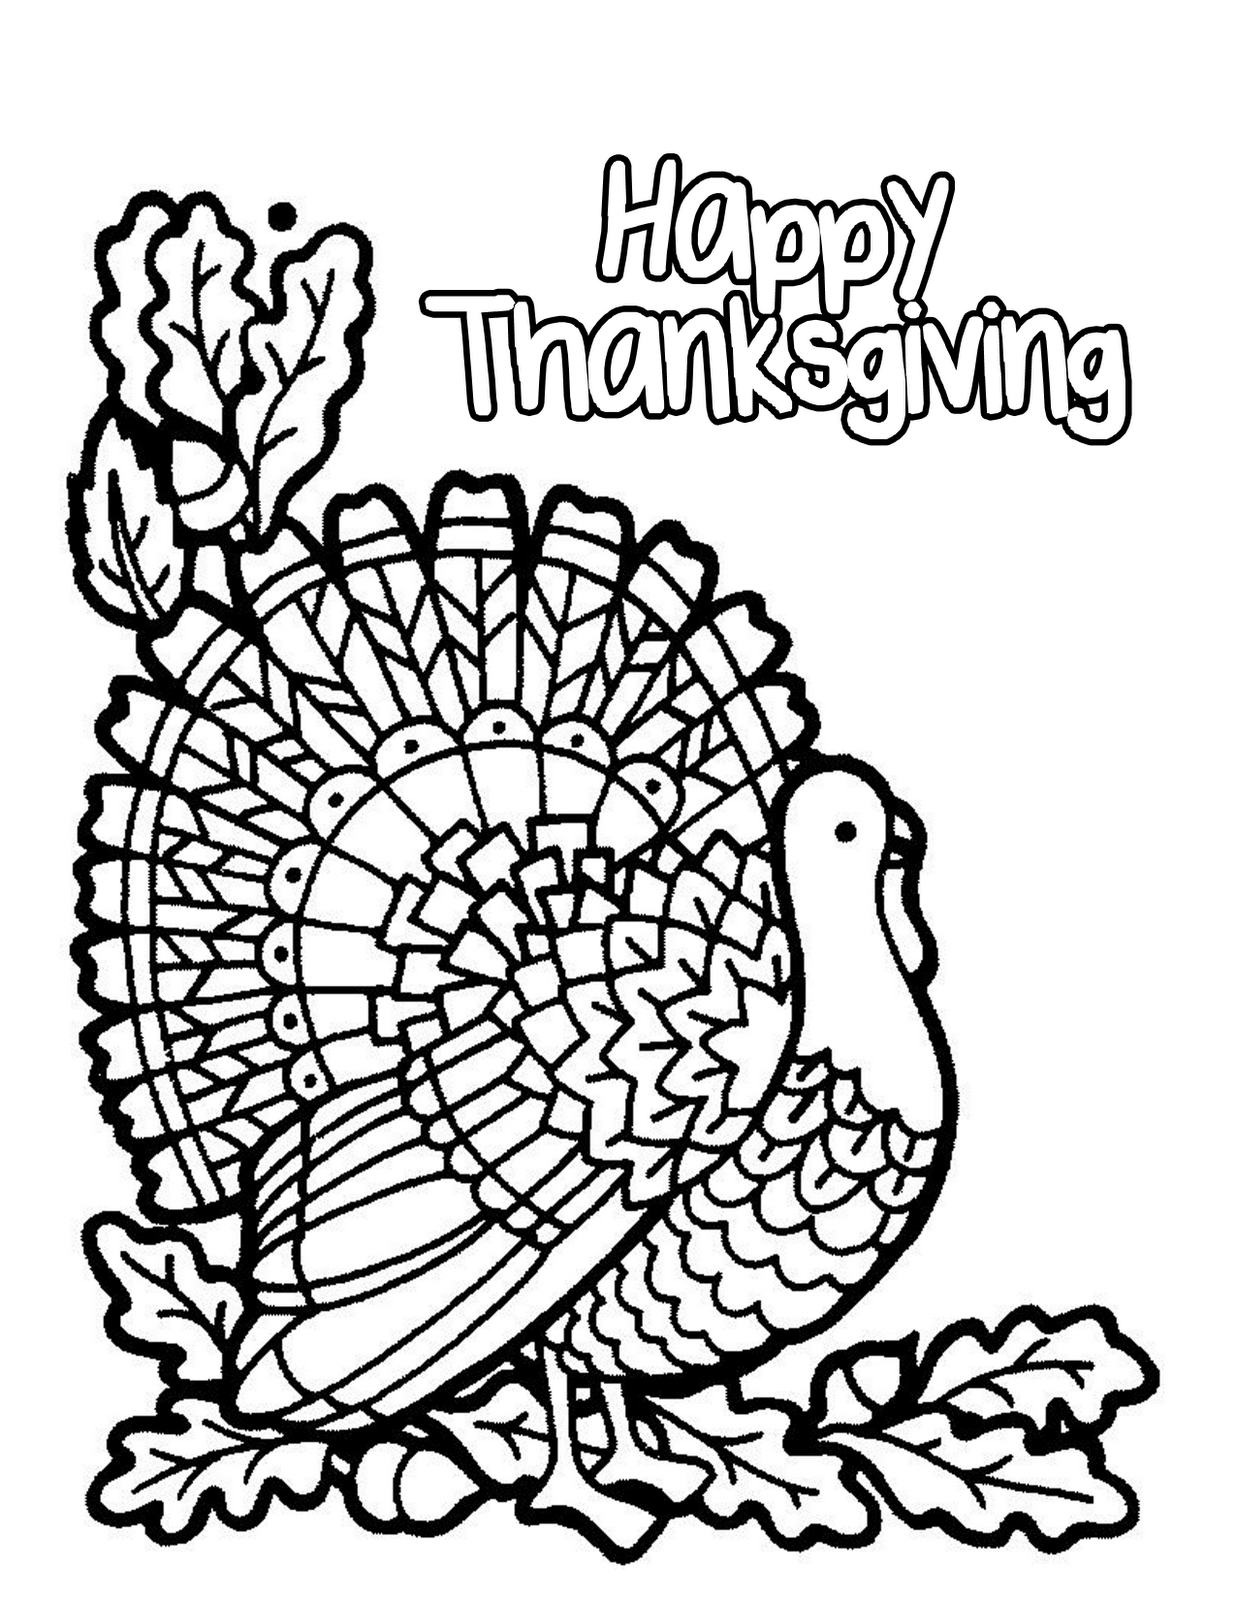 Thanksgiving coloring pages for adults coloring home for Thanksgiving coloring page free